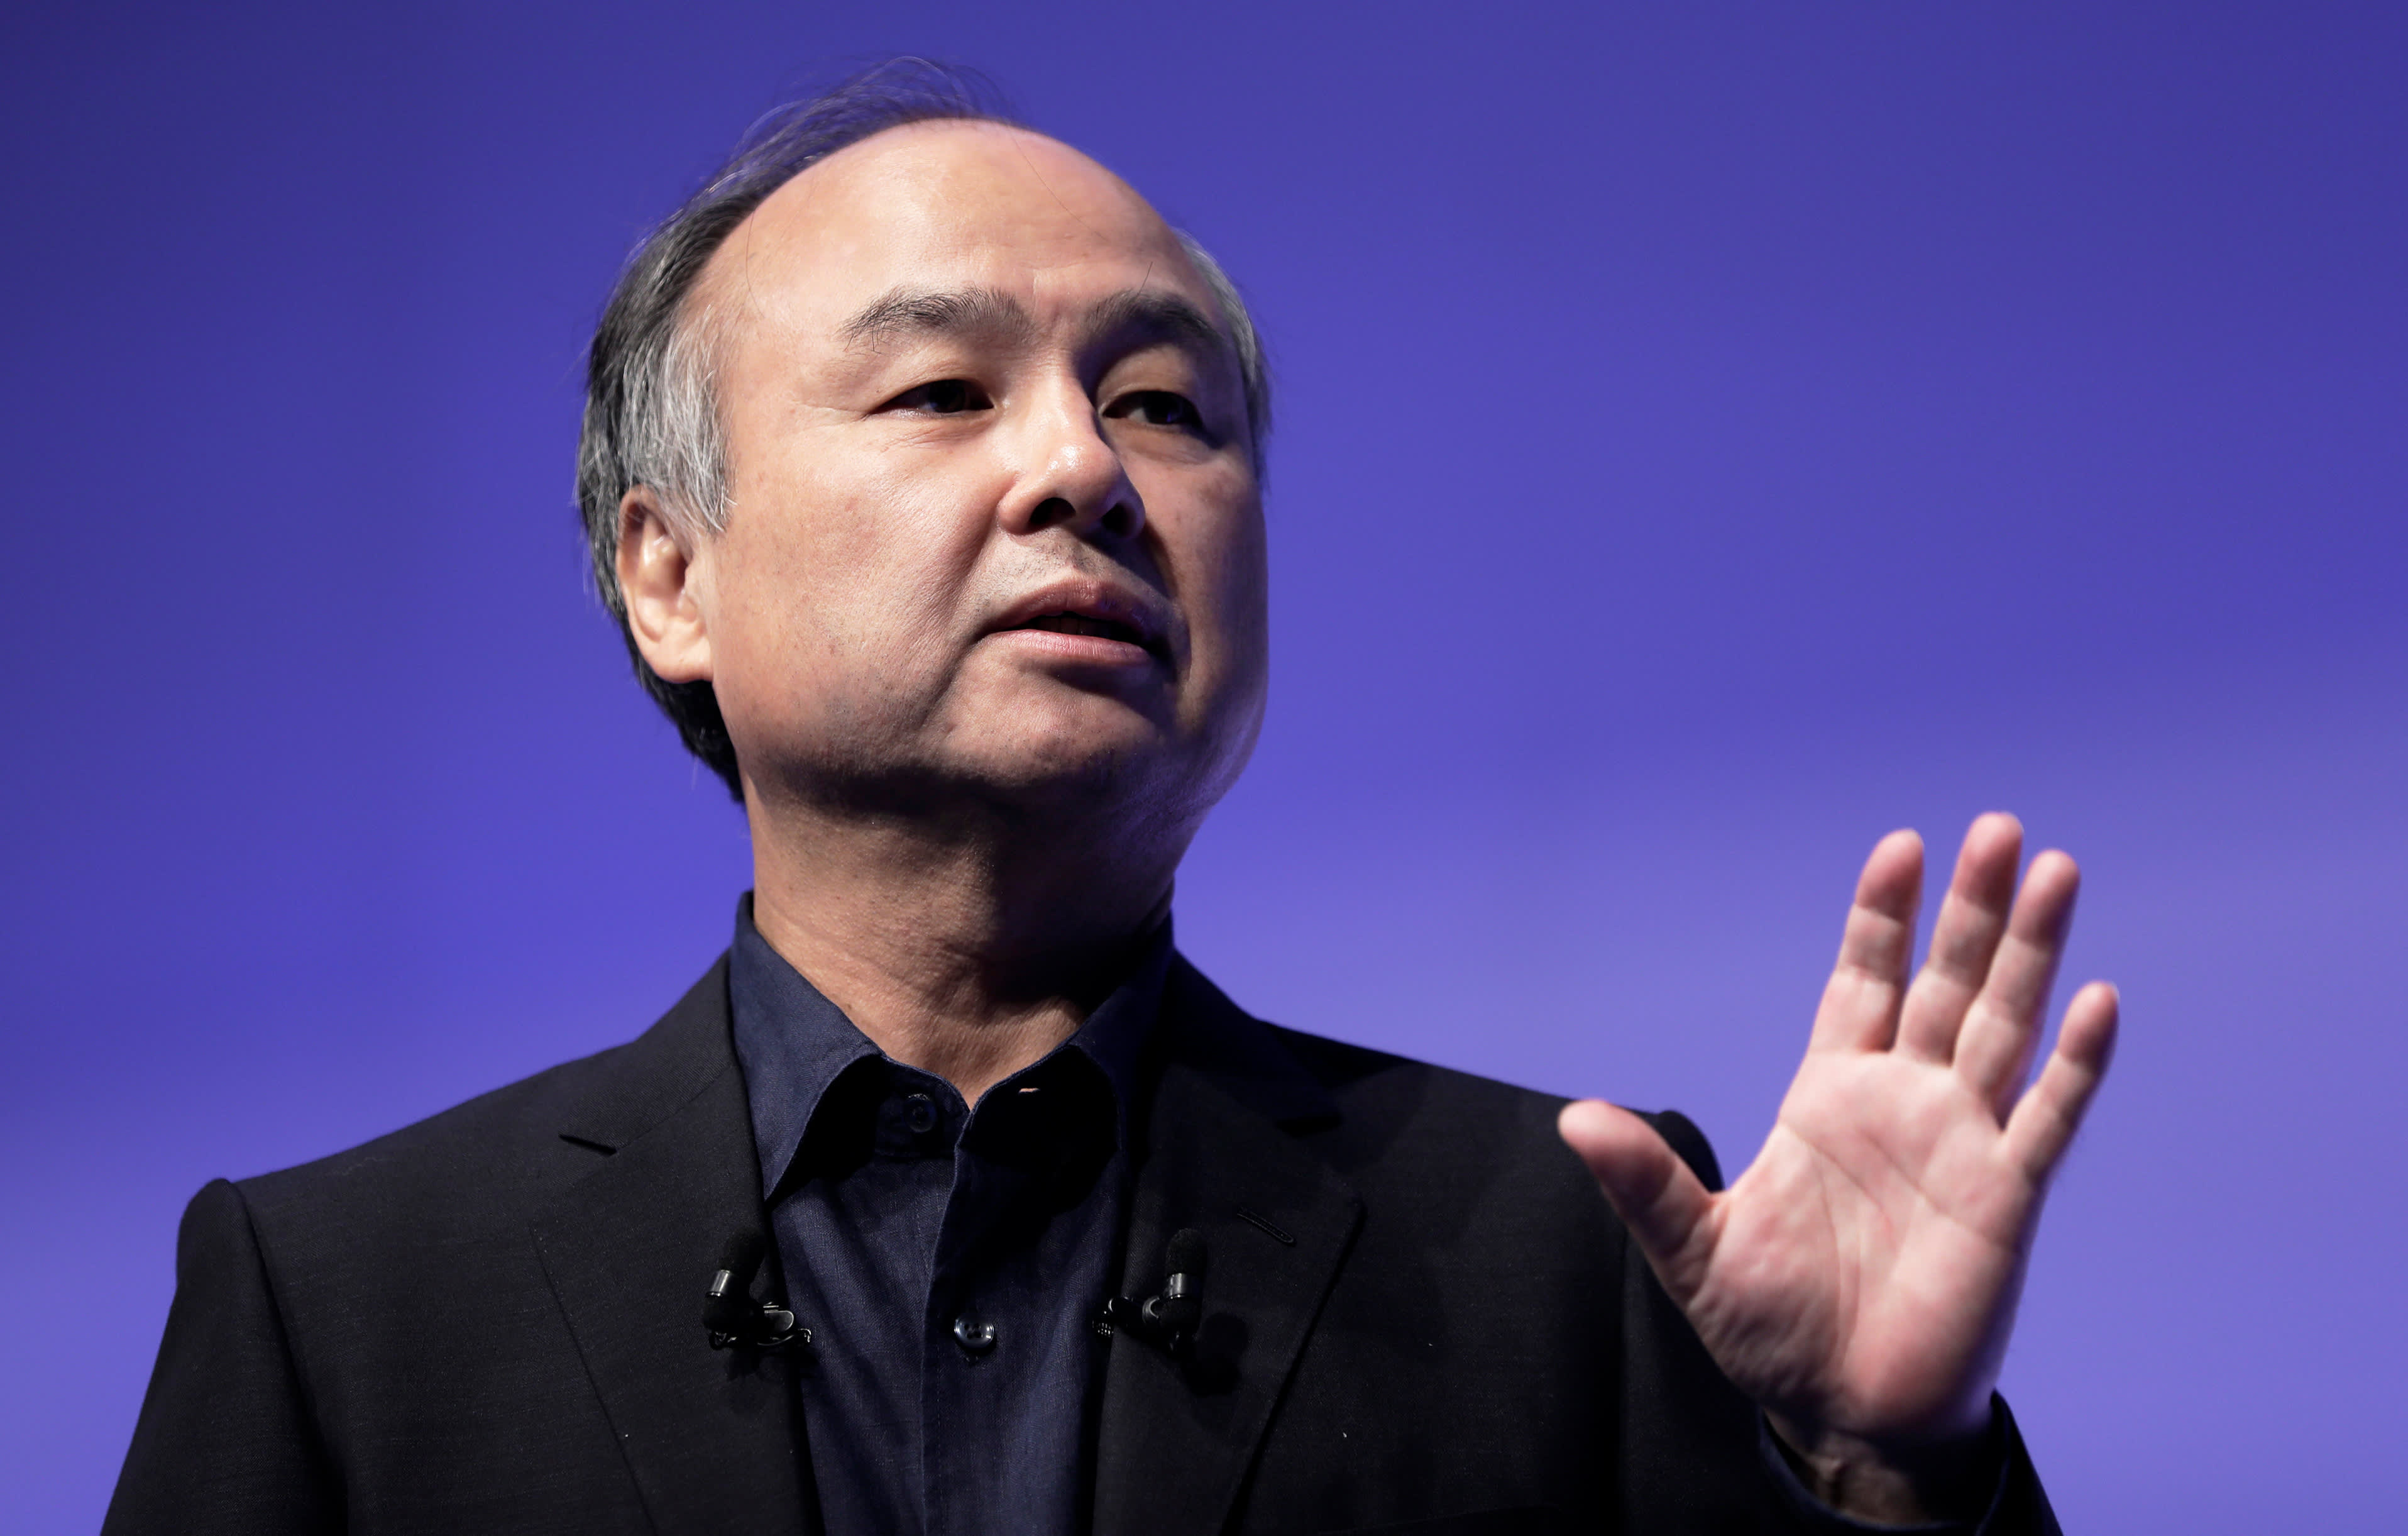 SoftBank CEO says there will be no 'rescue' investments after WeWork debacle